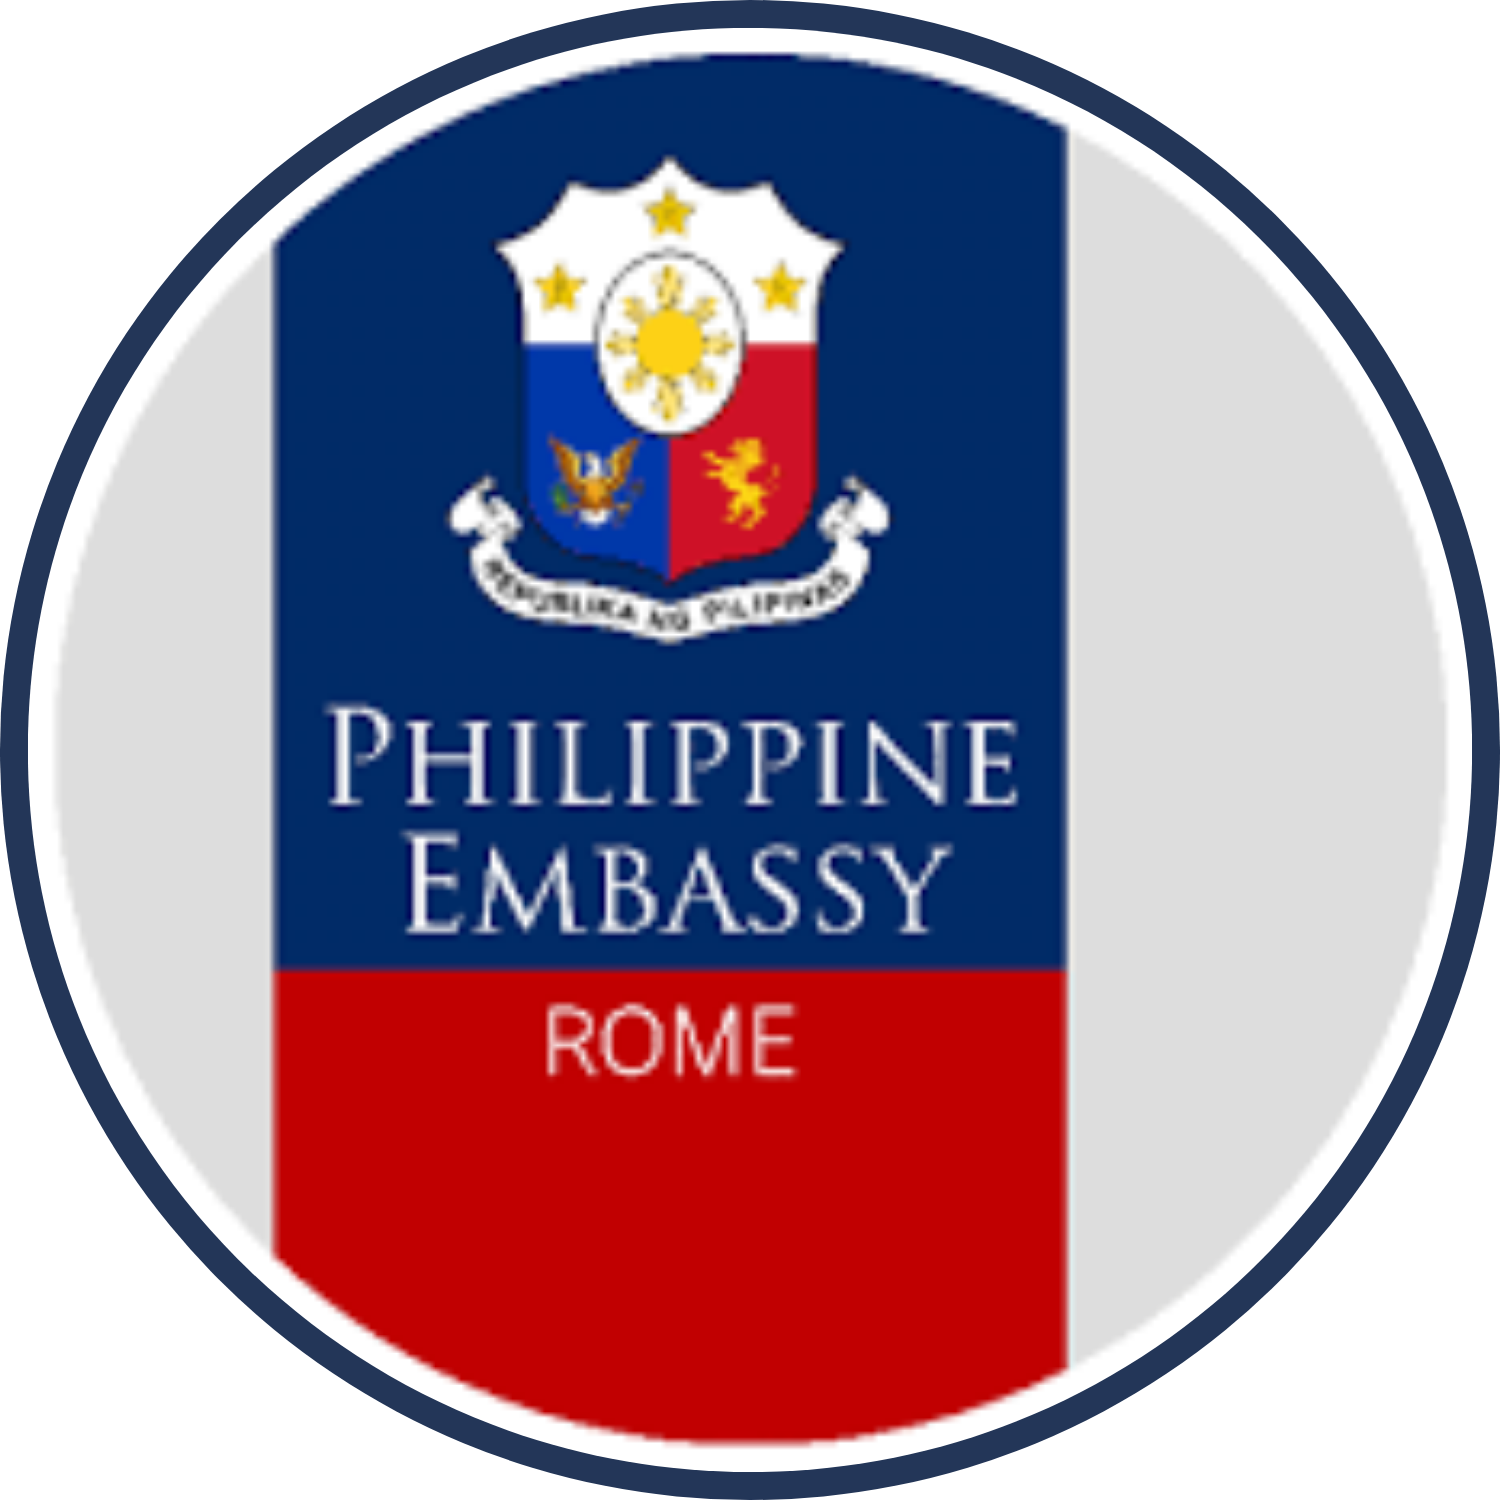 PHILIPPINE EMBASSY TO THE REPUBLIC OF ITALY